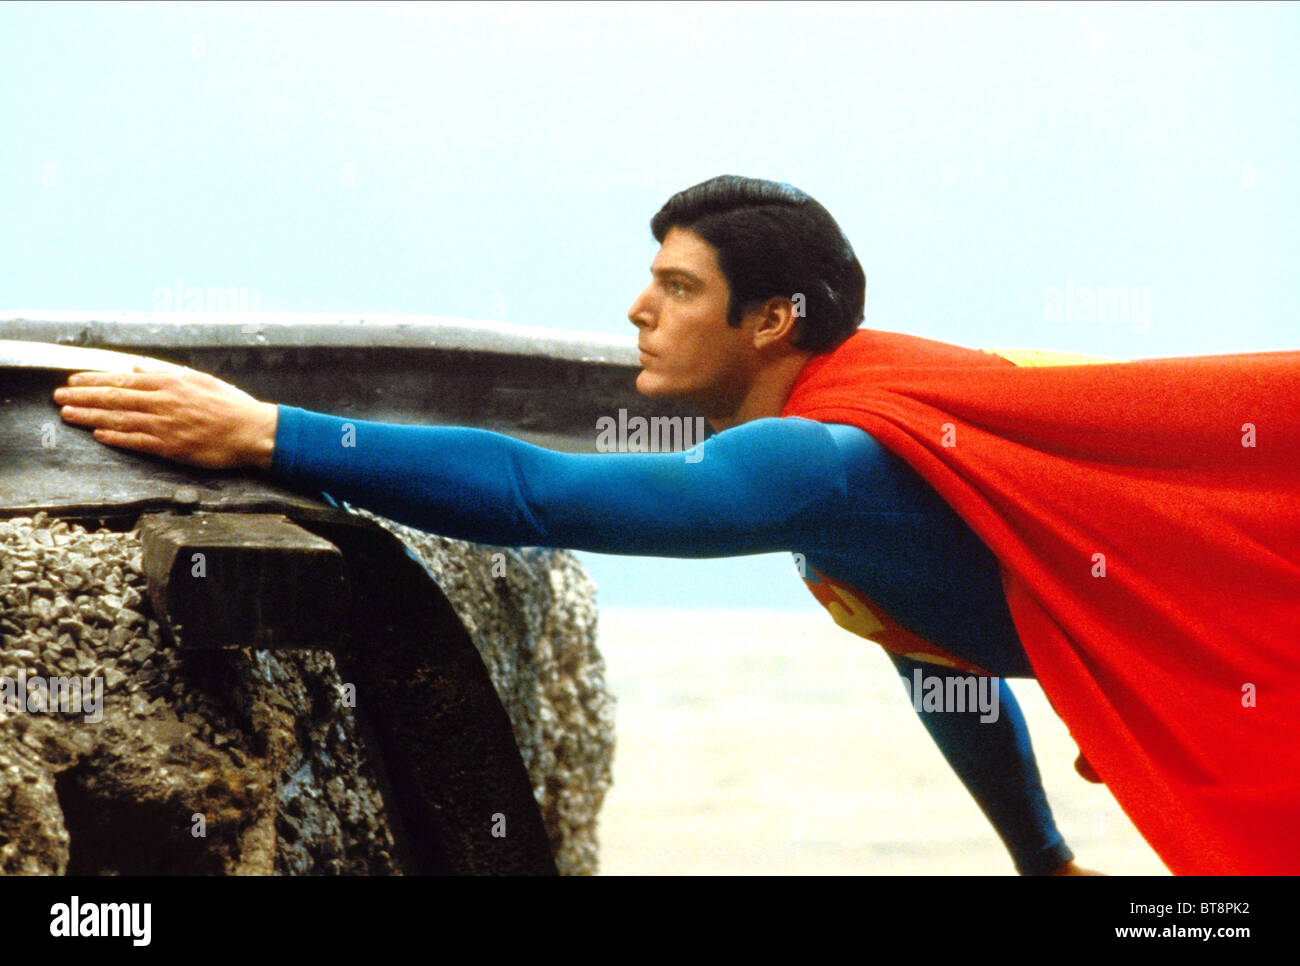 CHRISTOPHER REEVE SUPERMAN (1978) - Stock Image